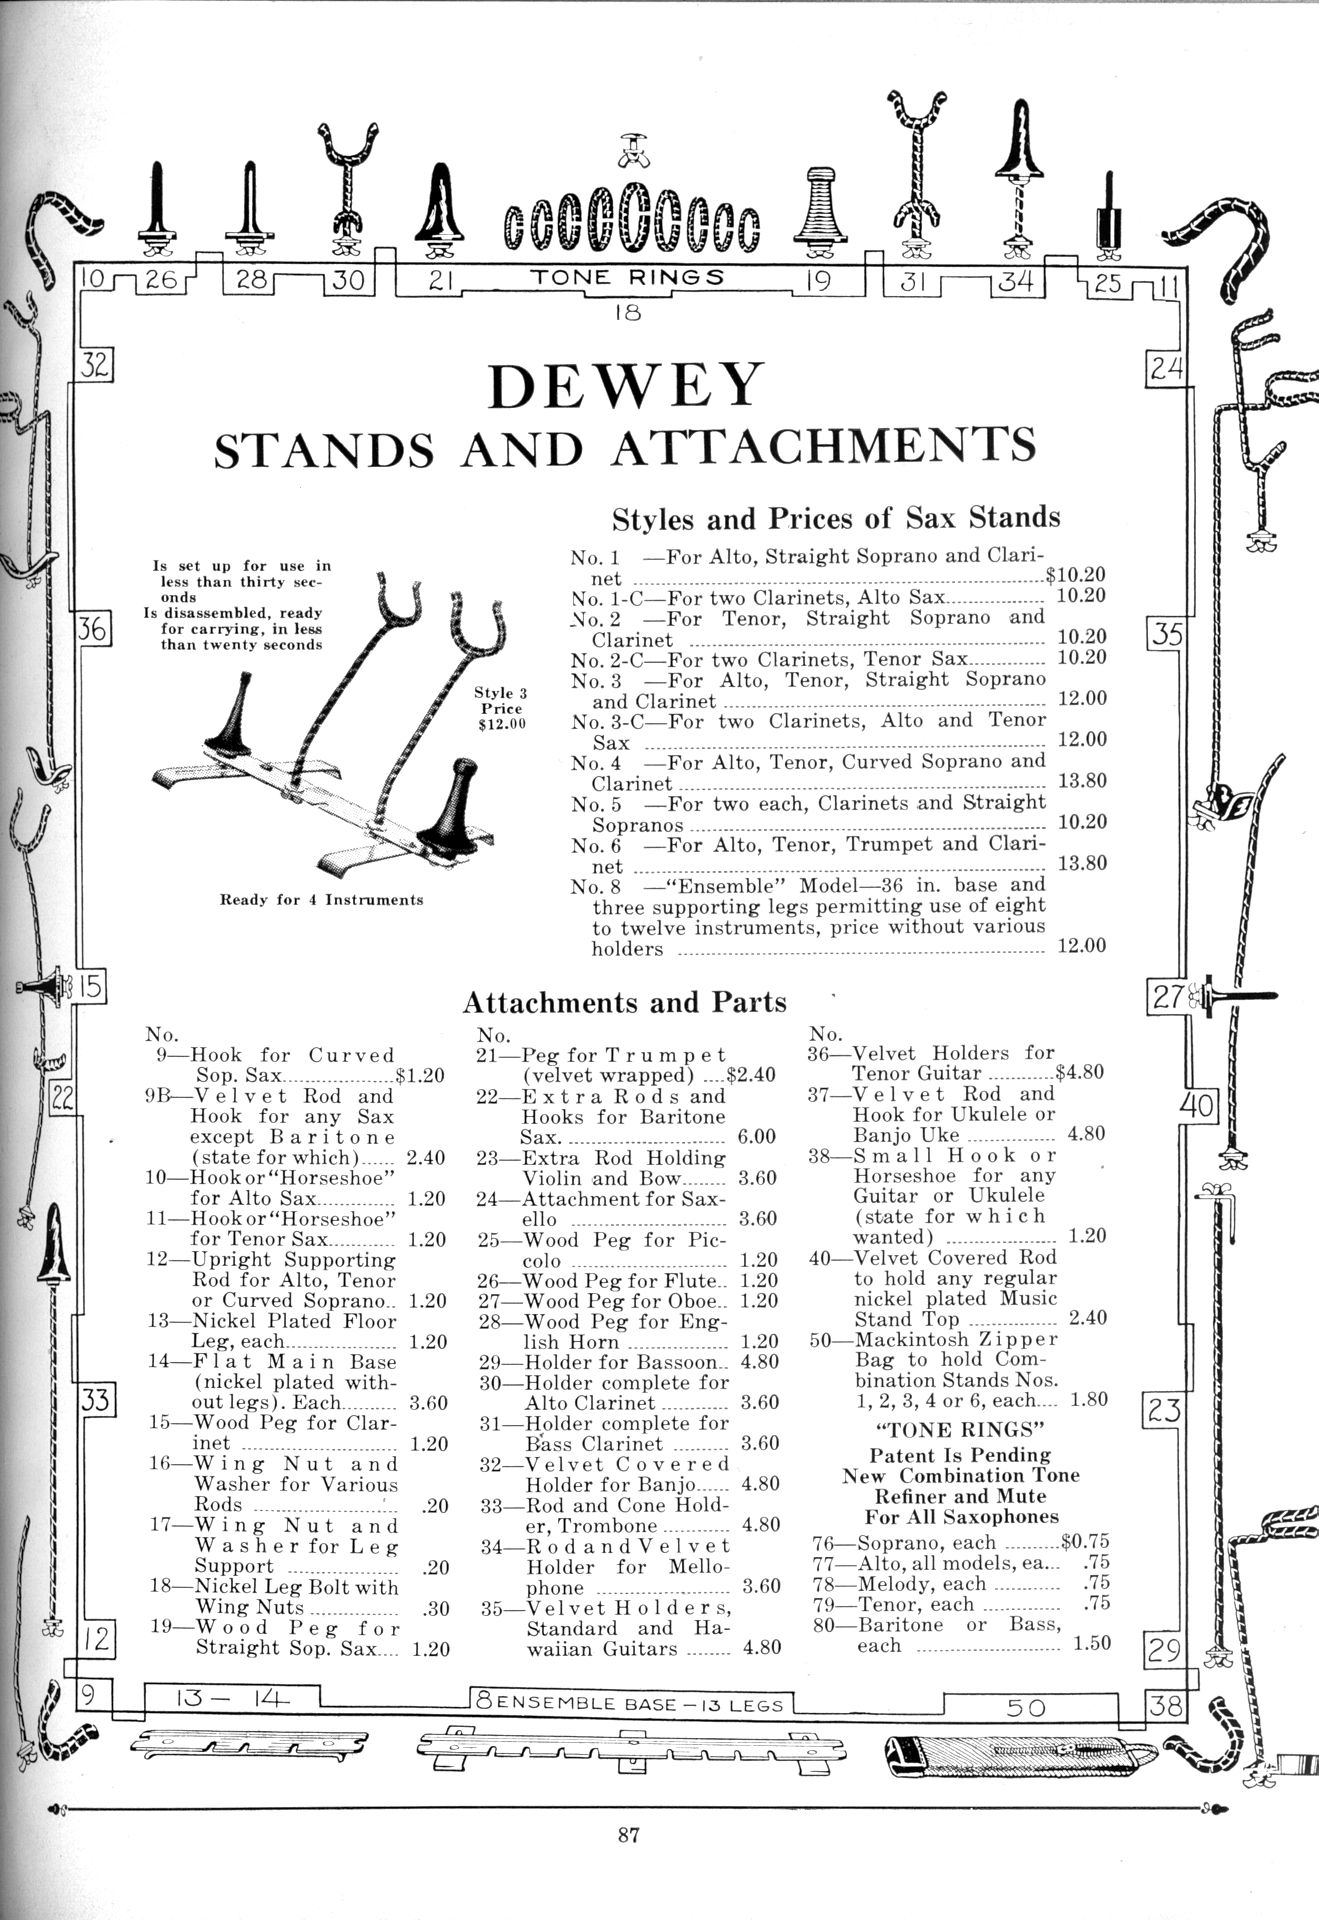 Chicago Musical Instrument Company catalogue, 1931, Dewey sax stands, tone rings